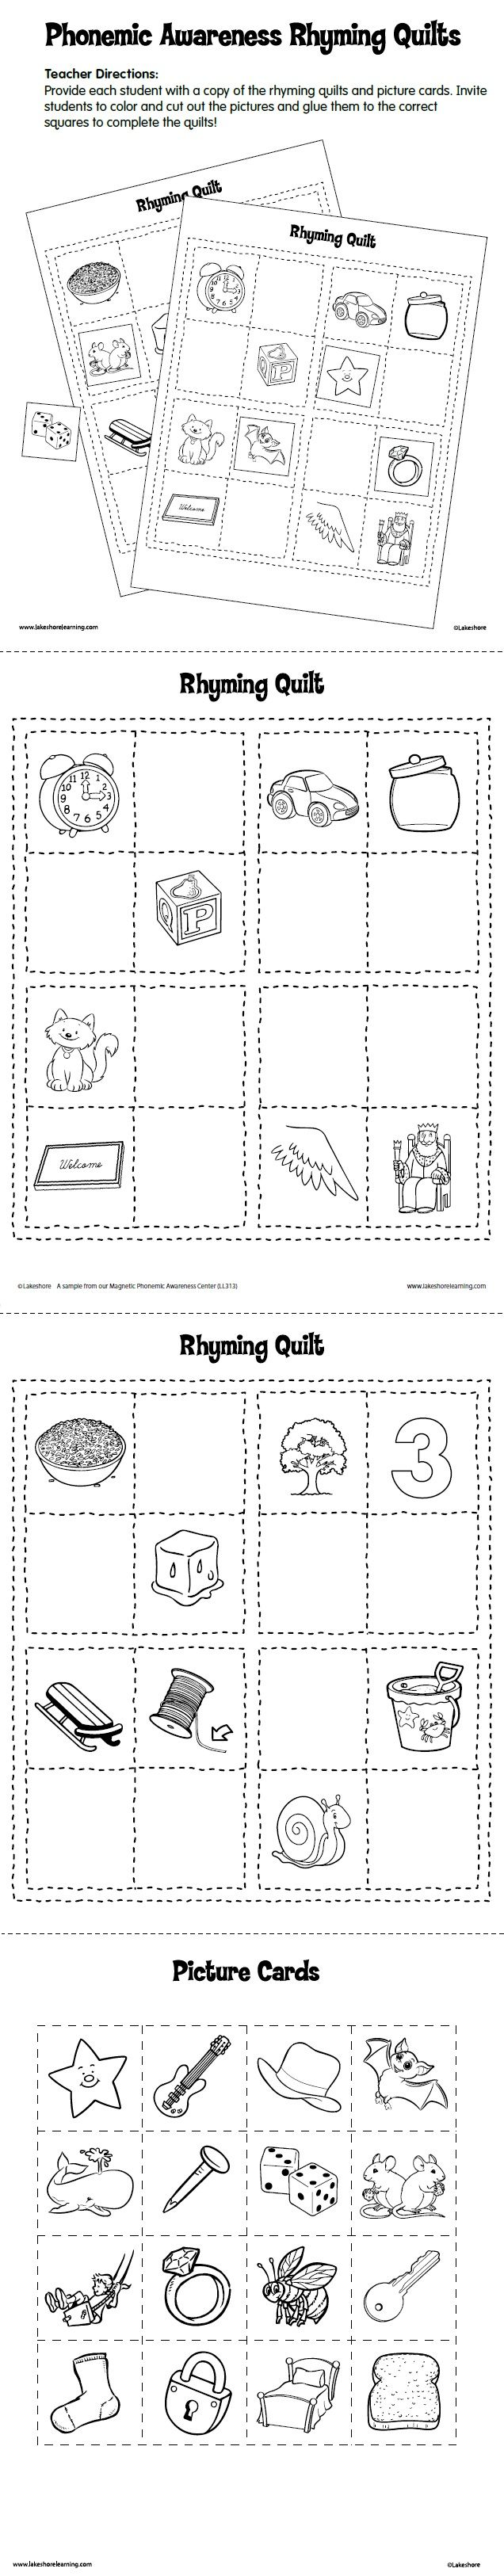 Phonemic Awareness Rhyming Quilts Free Printable